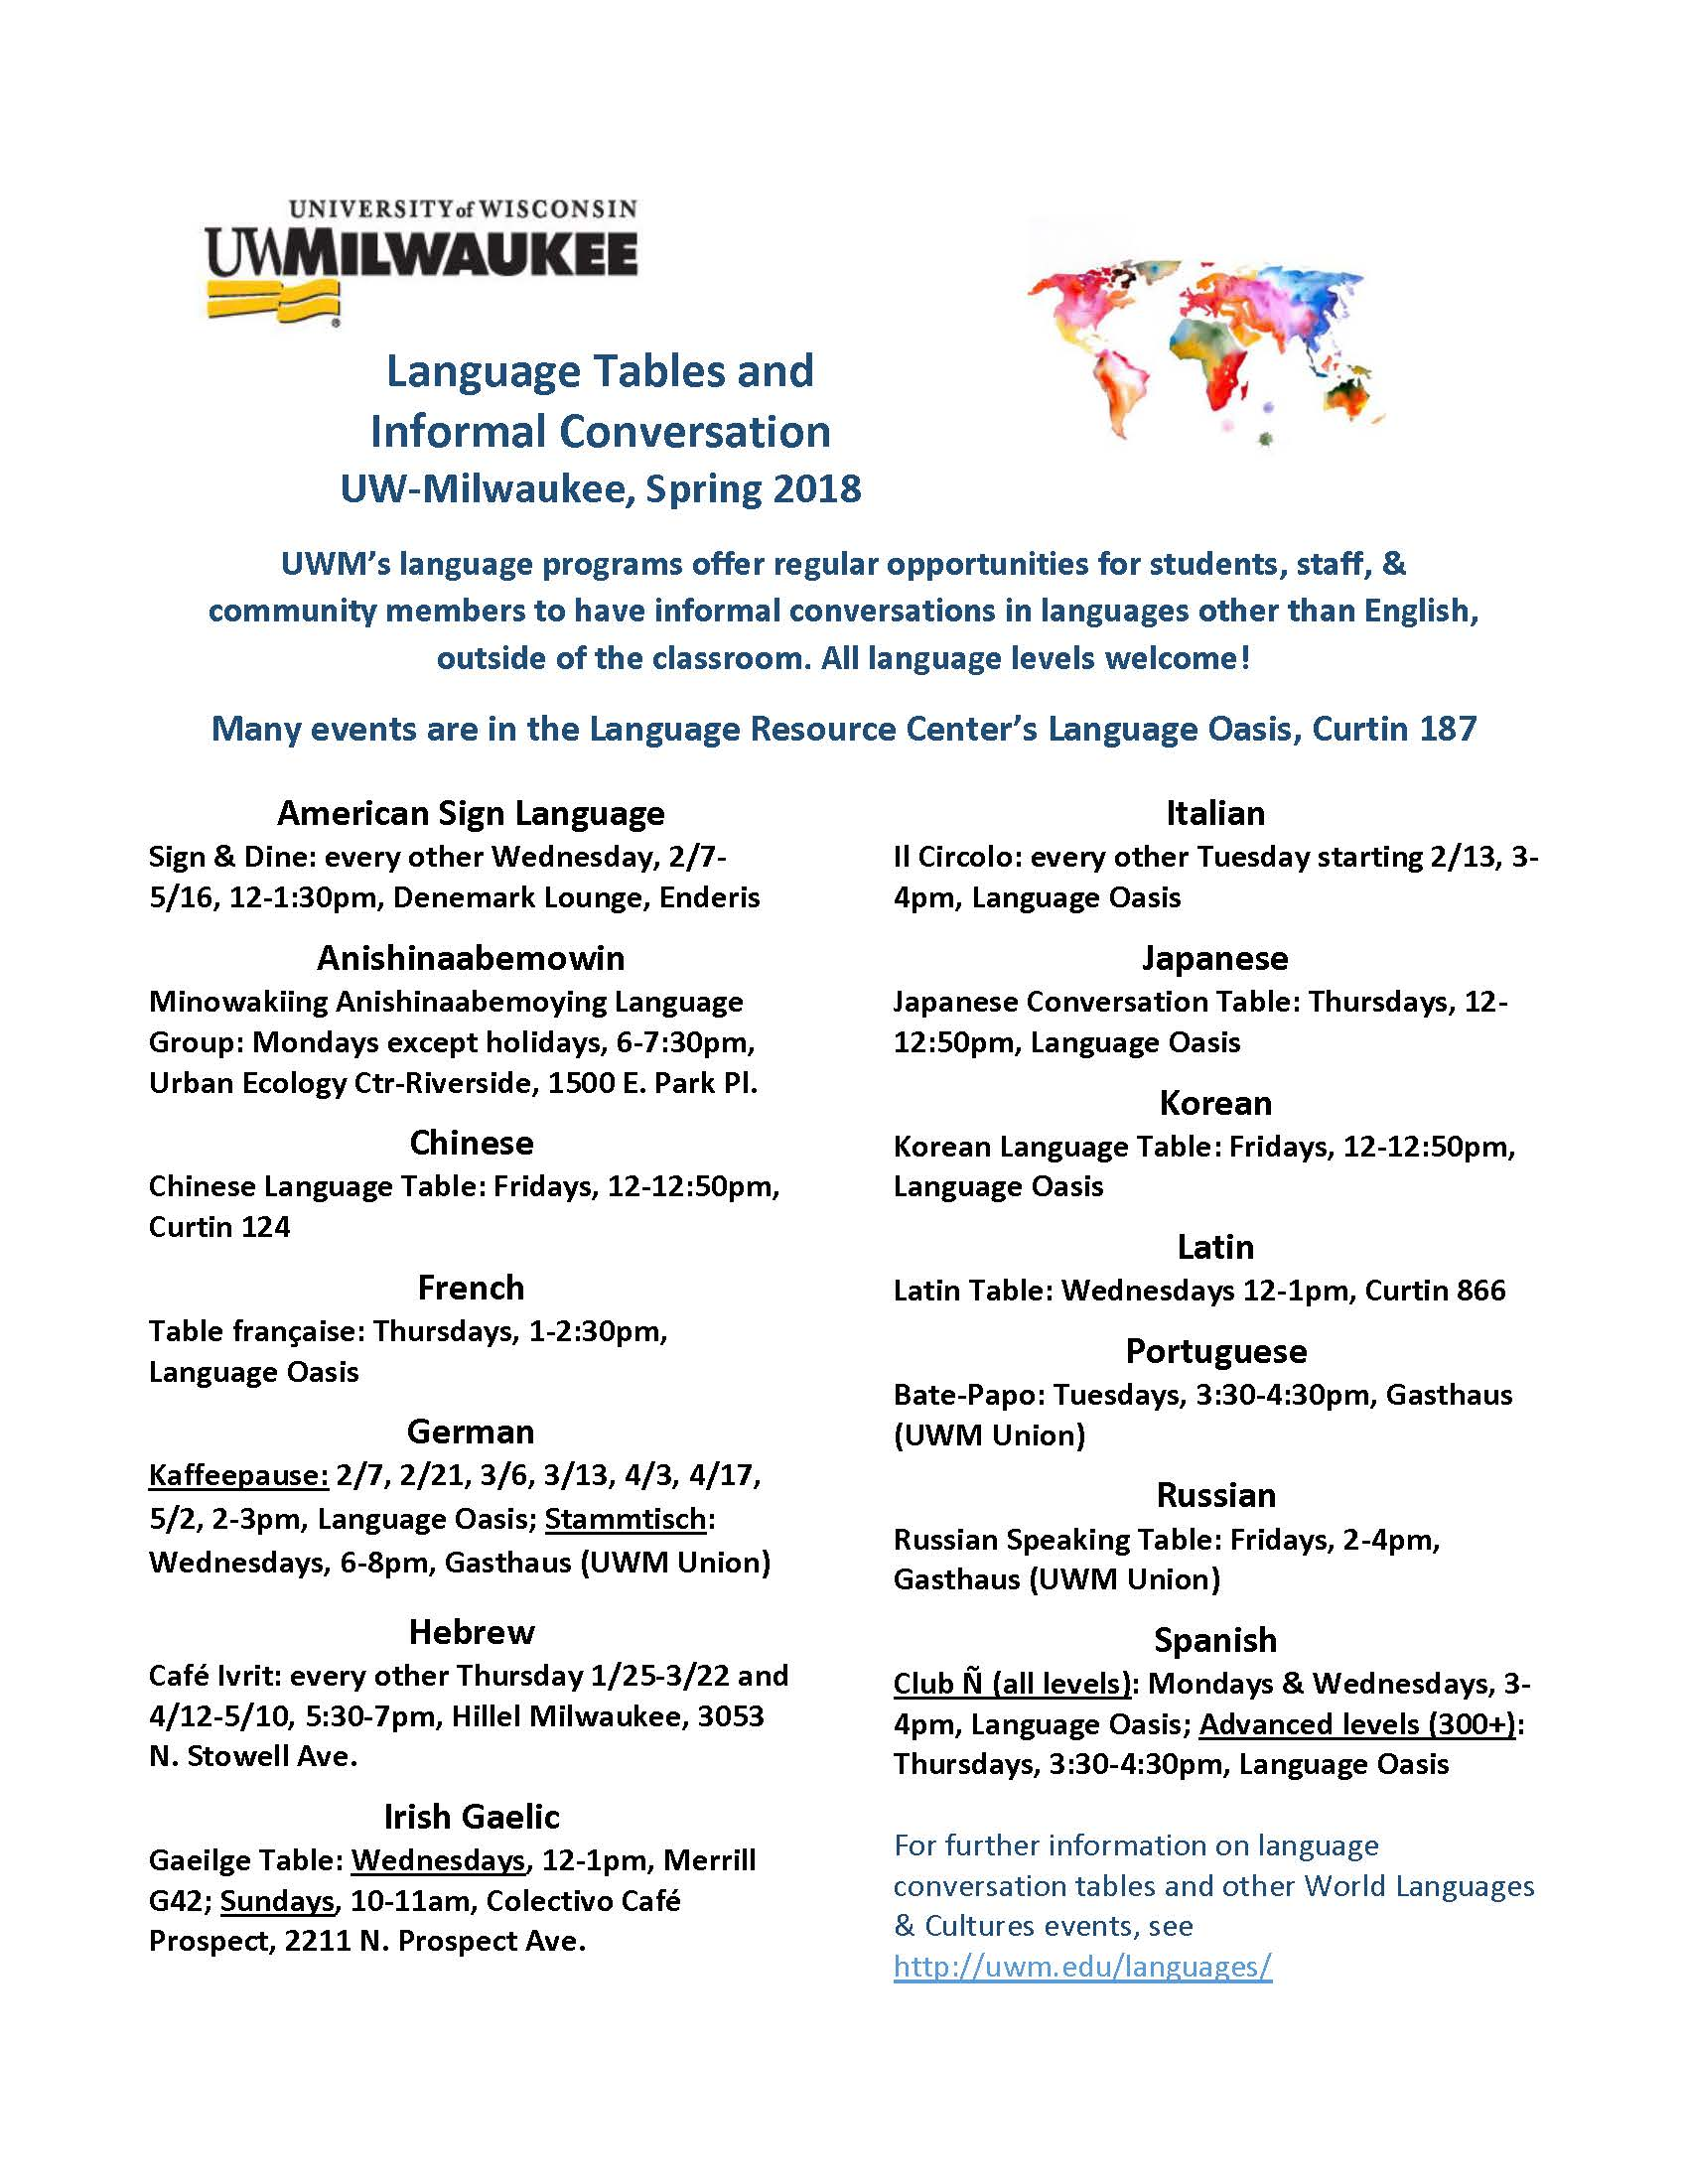 Merveilleux Complete Schedule For UWMu0027s Spring 2018 Language Tables. All Events Are  Available Online At Https